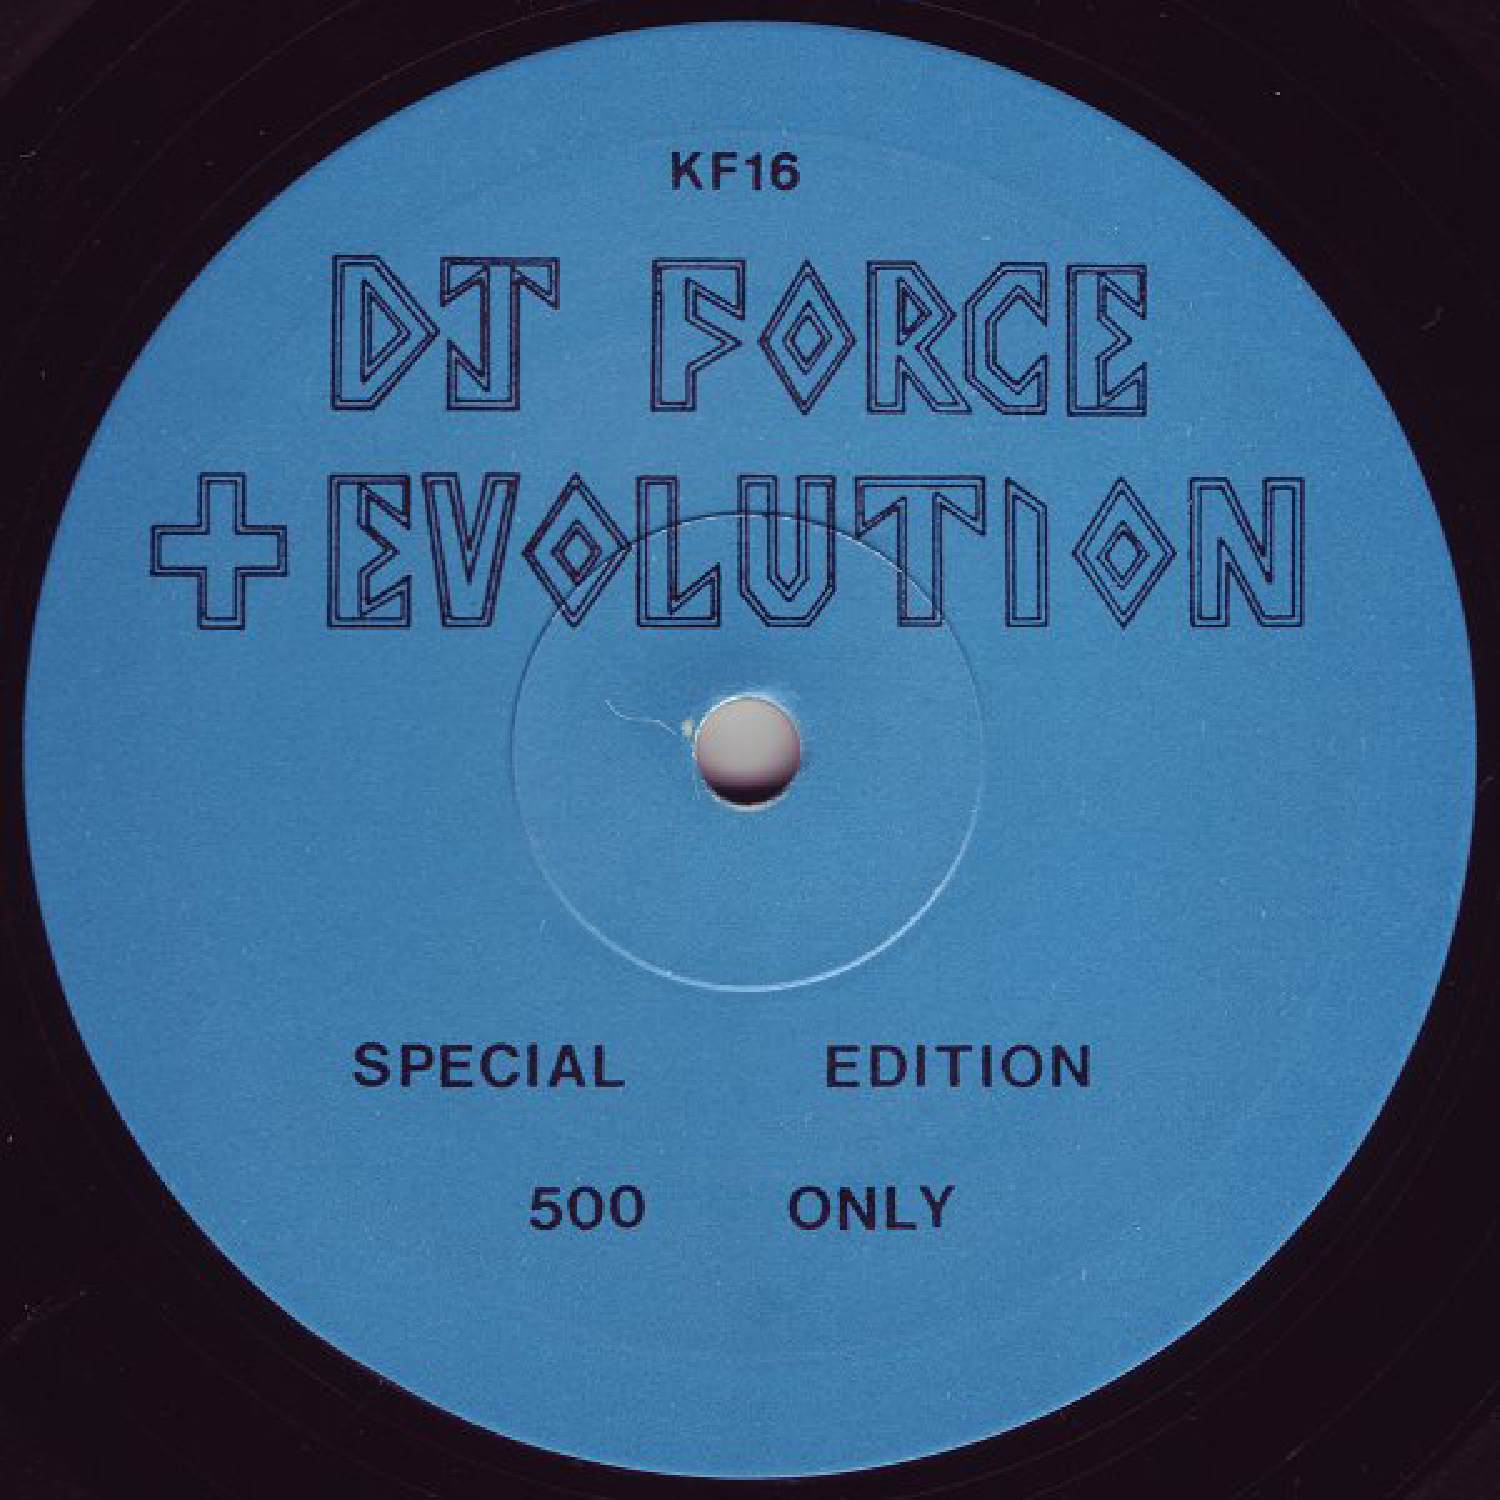 [KF016] DJ Force & The Evolution - Perfect Dreams EP (Digital Only)